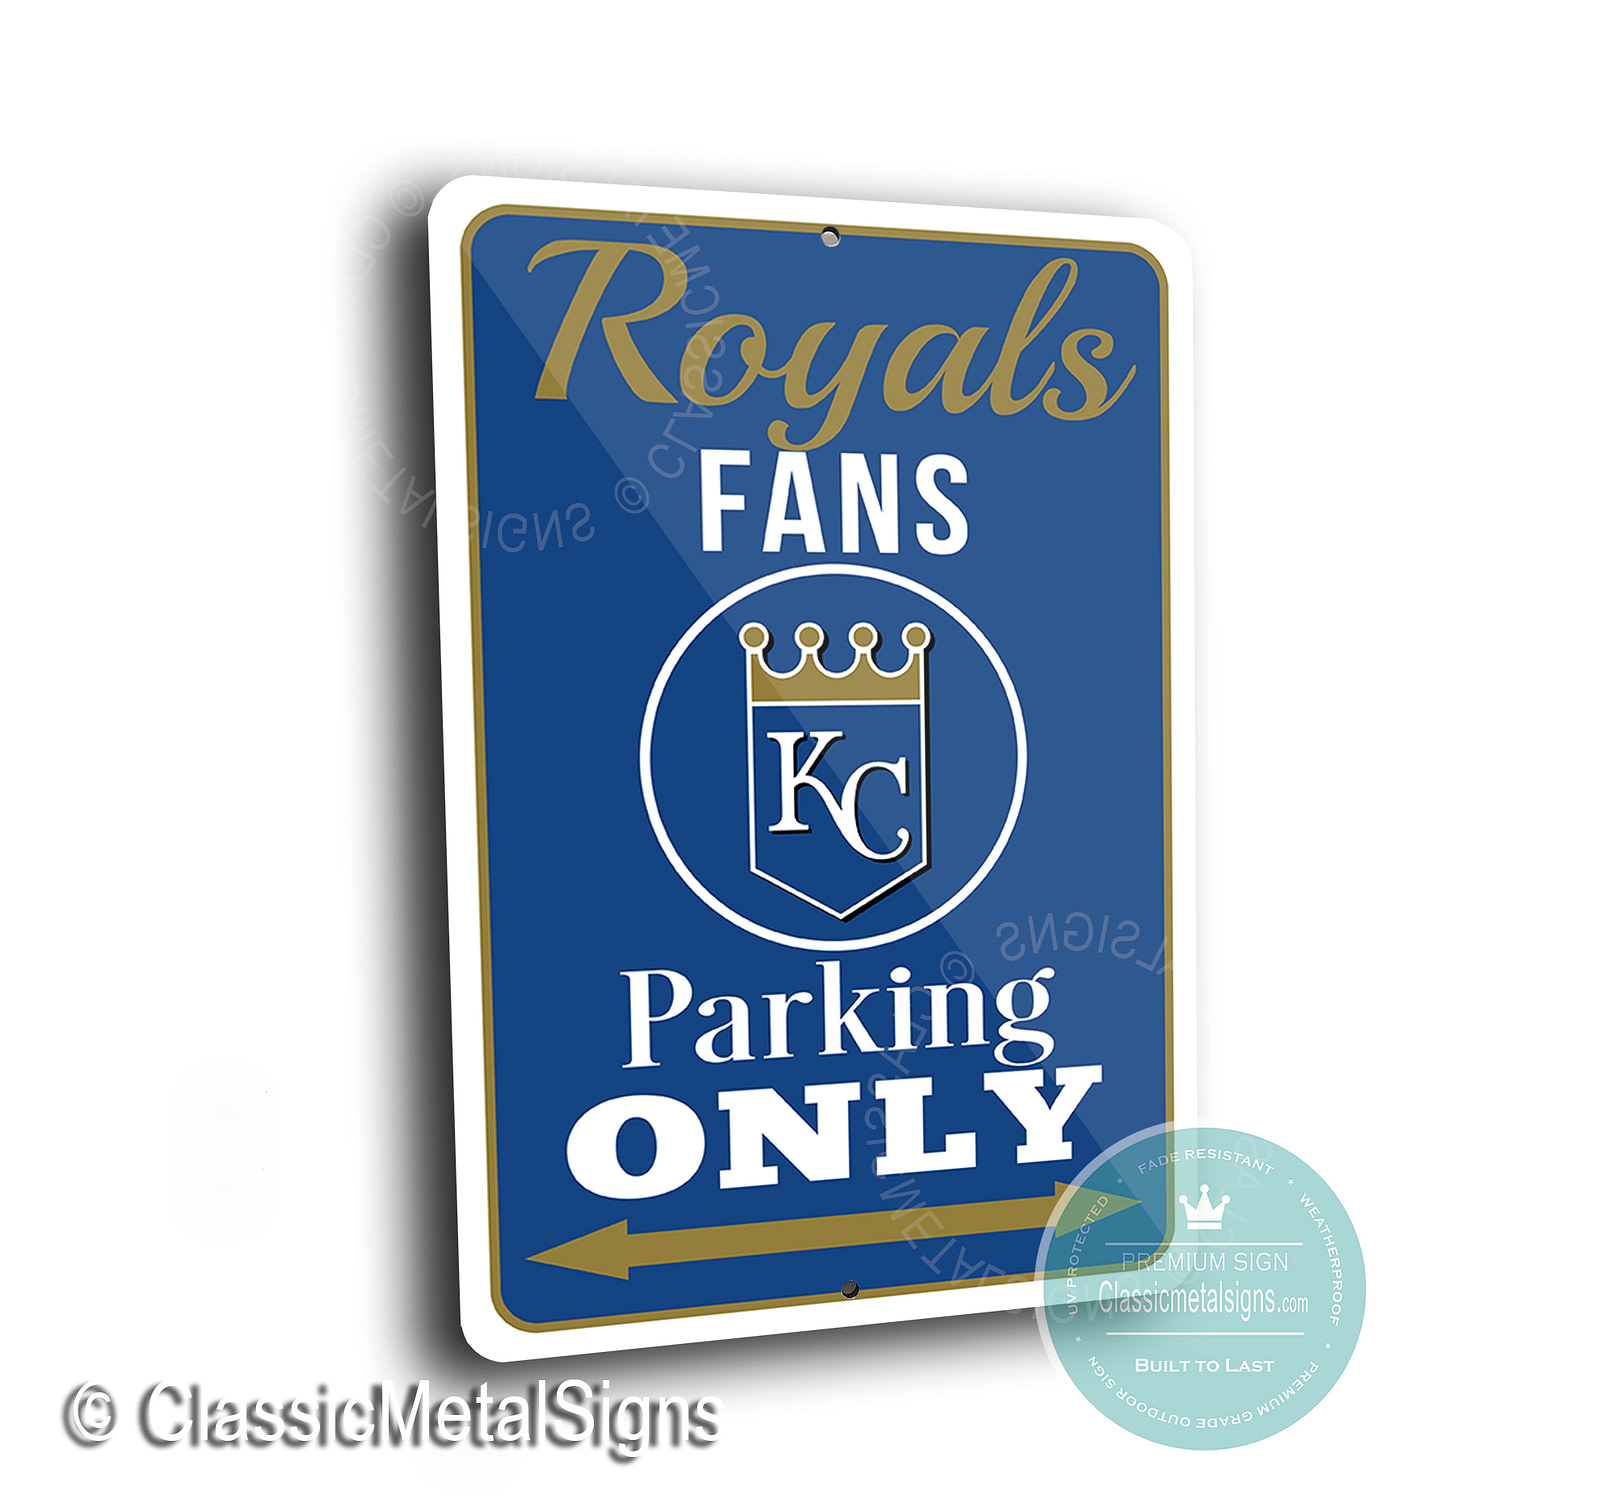 Royals Parking Only Signs